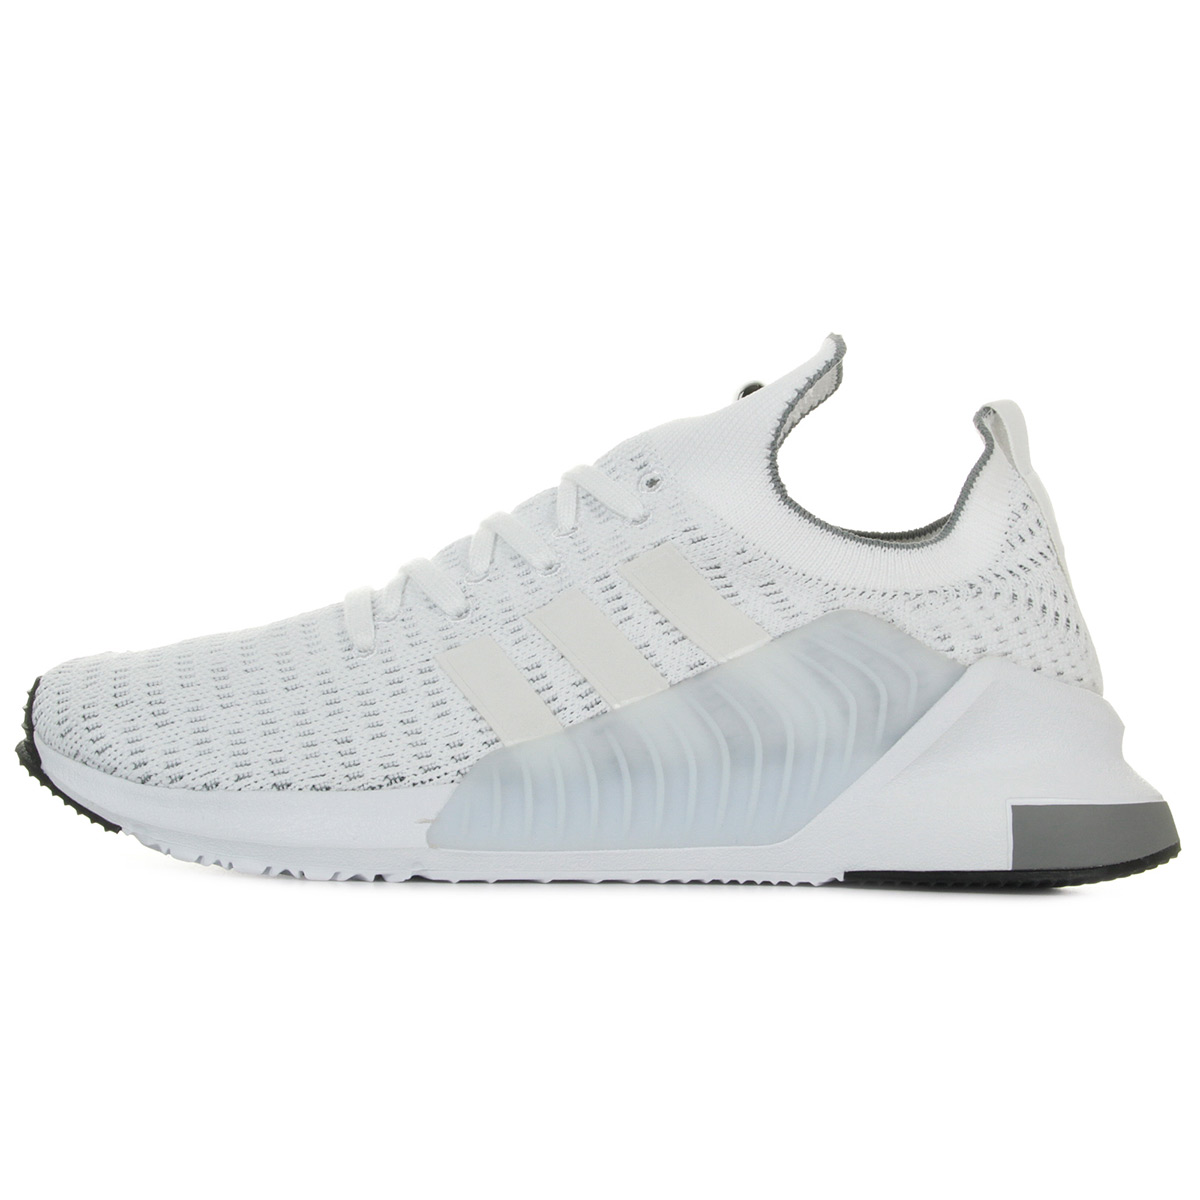 Adidas Mode 0217 Homme Climacool Cq2245Baskets Pk 67ygYbf